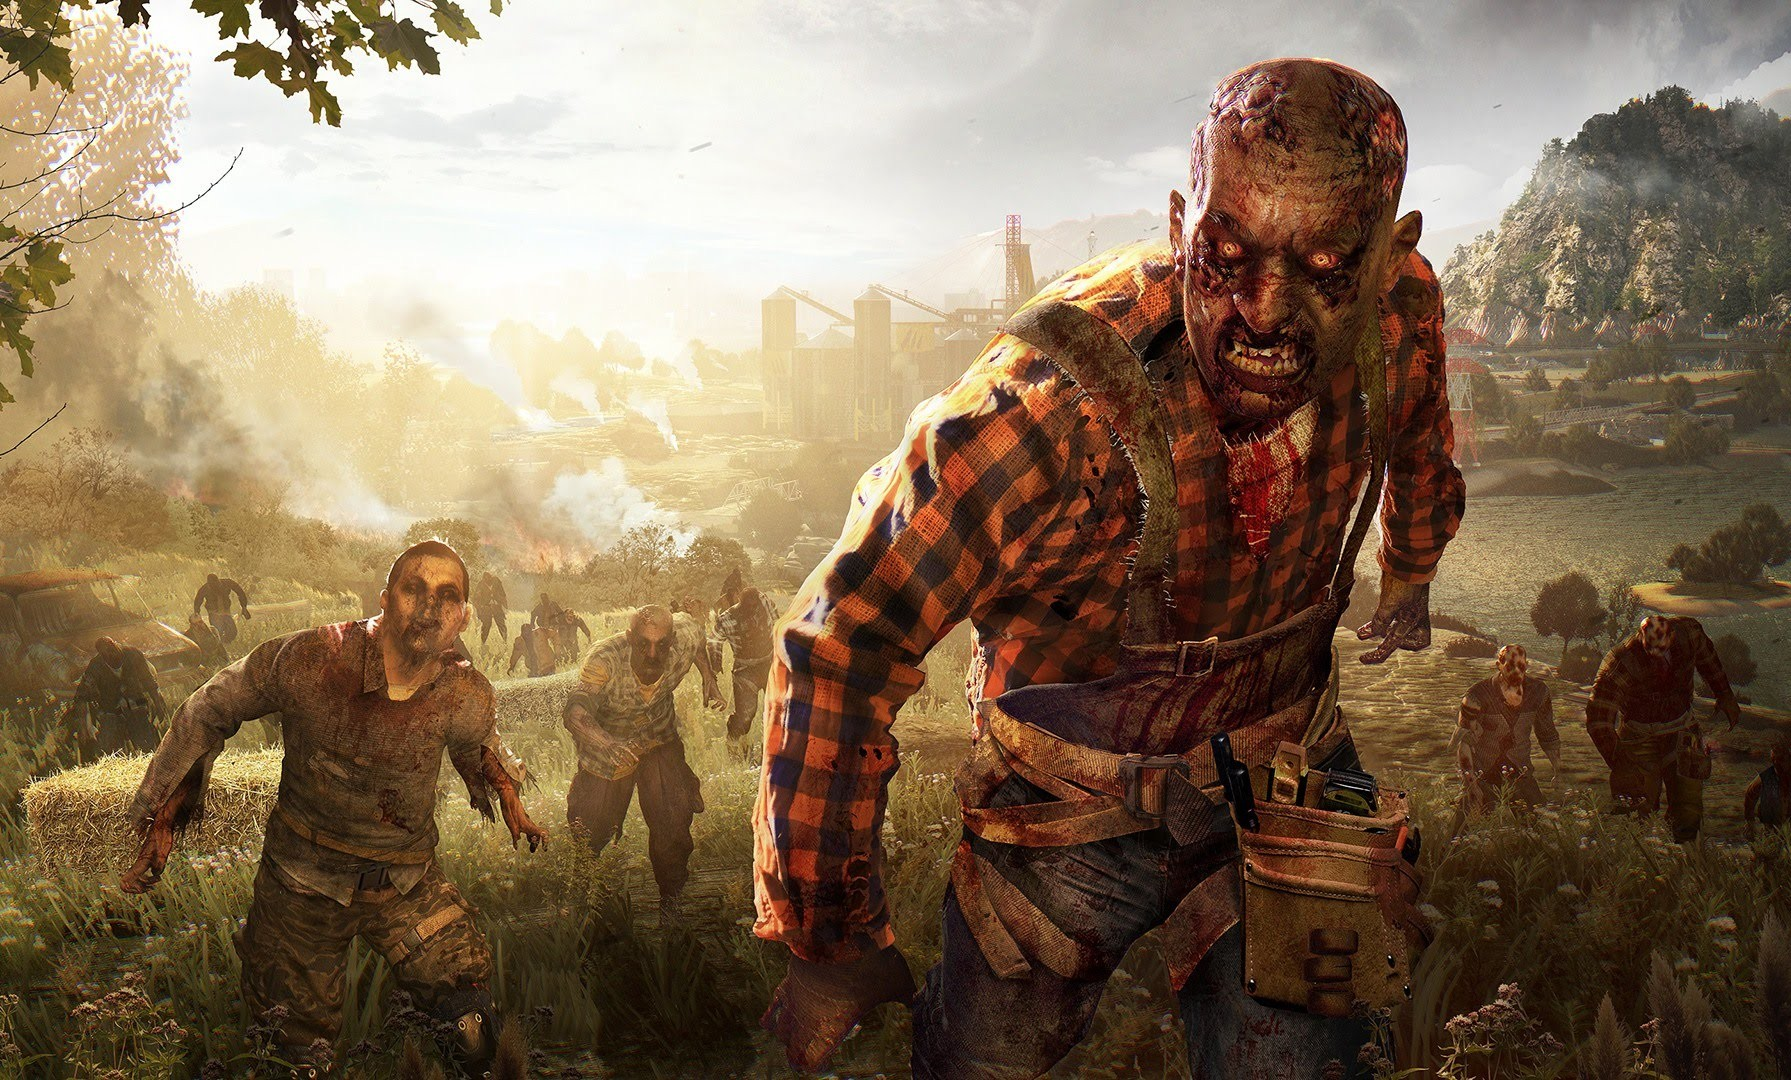 LOS PRIMEROS 16 MINUTOS DE DYING LIGHT: THE FOLLOWIN